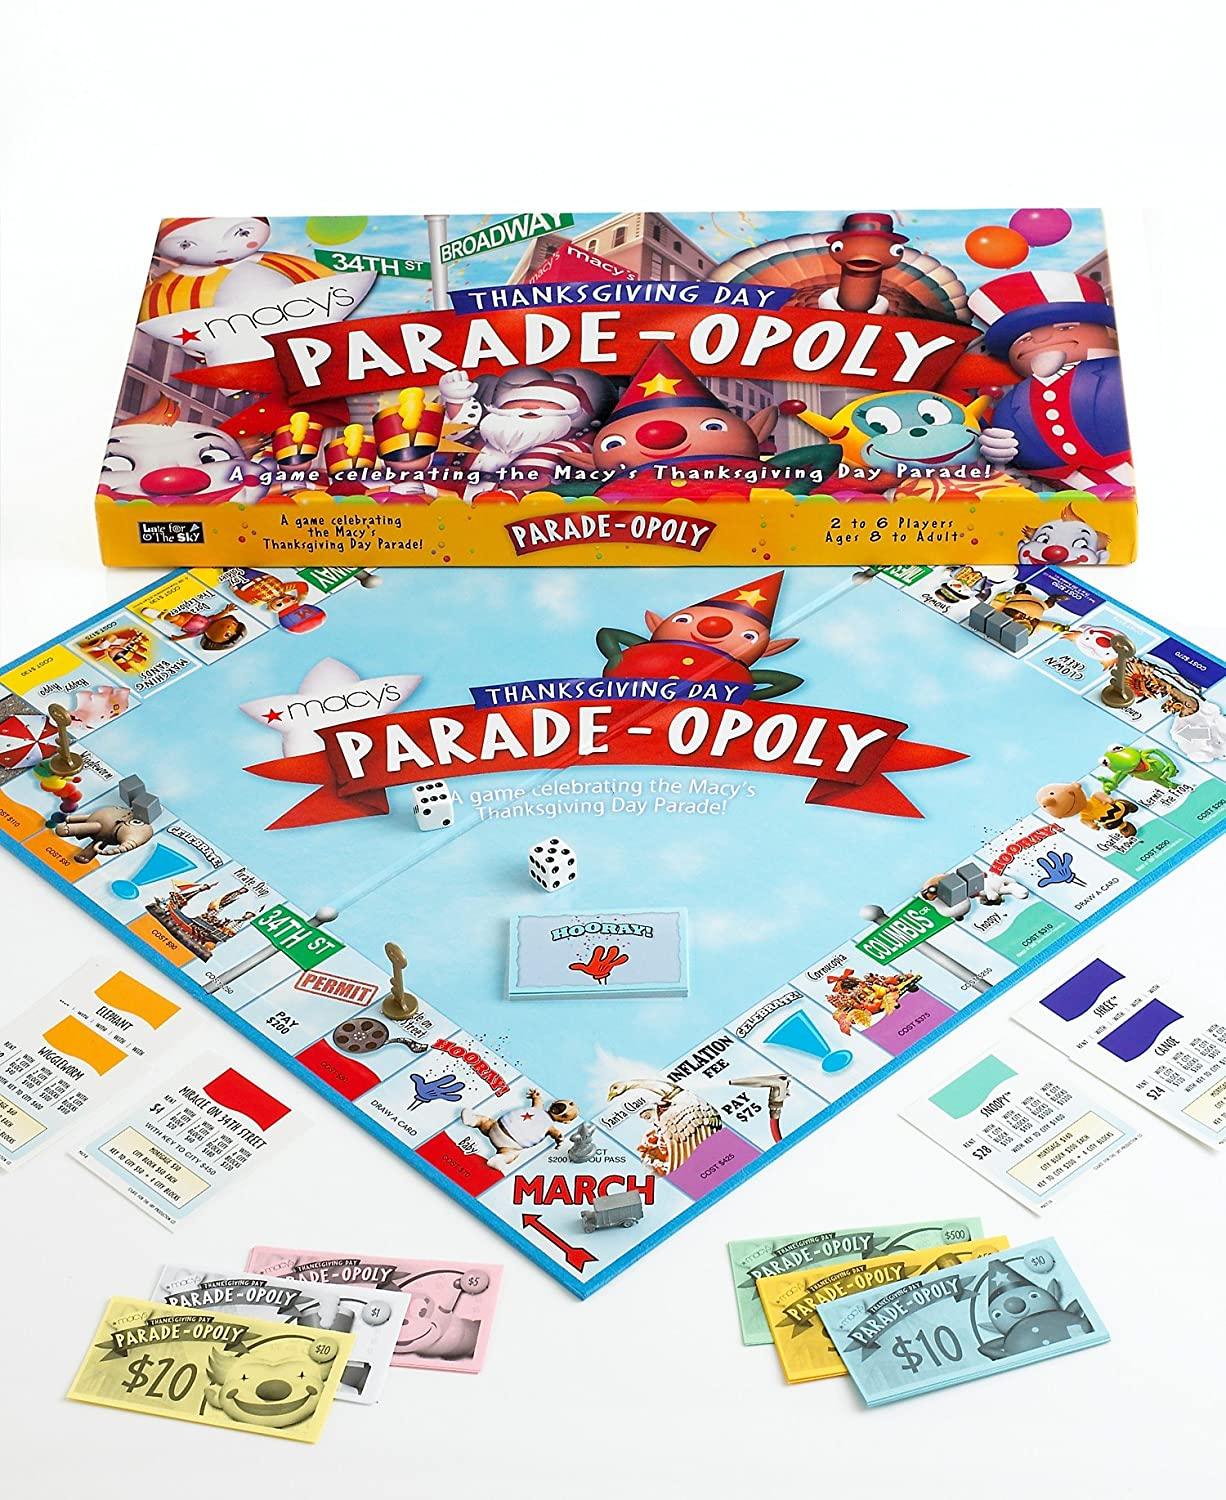 Amazon.com: 2010 Macy\'s Thanksgiving Day Parade-opoly Board Game ...